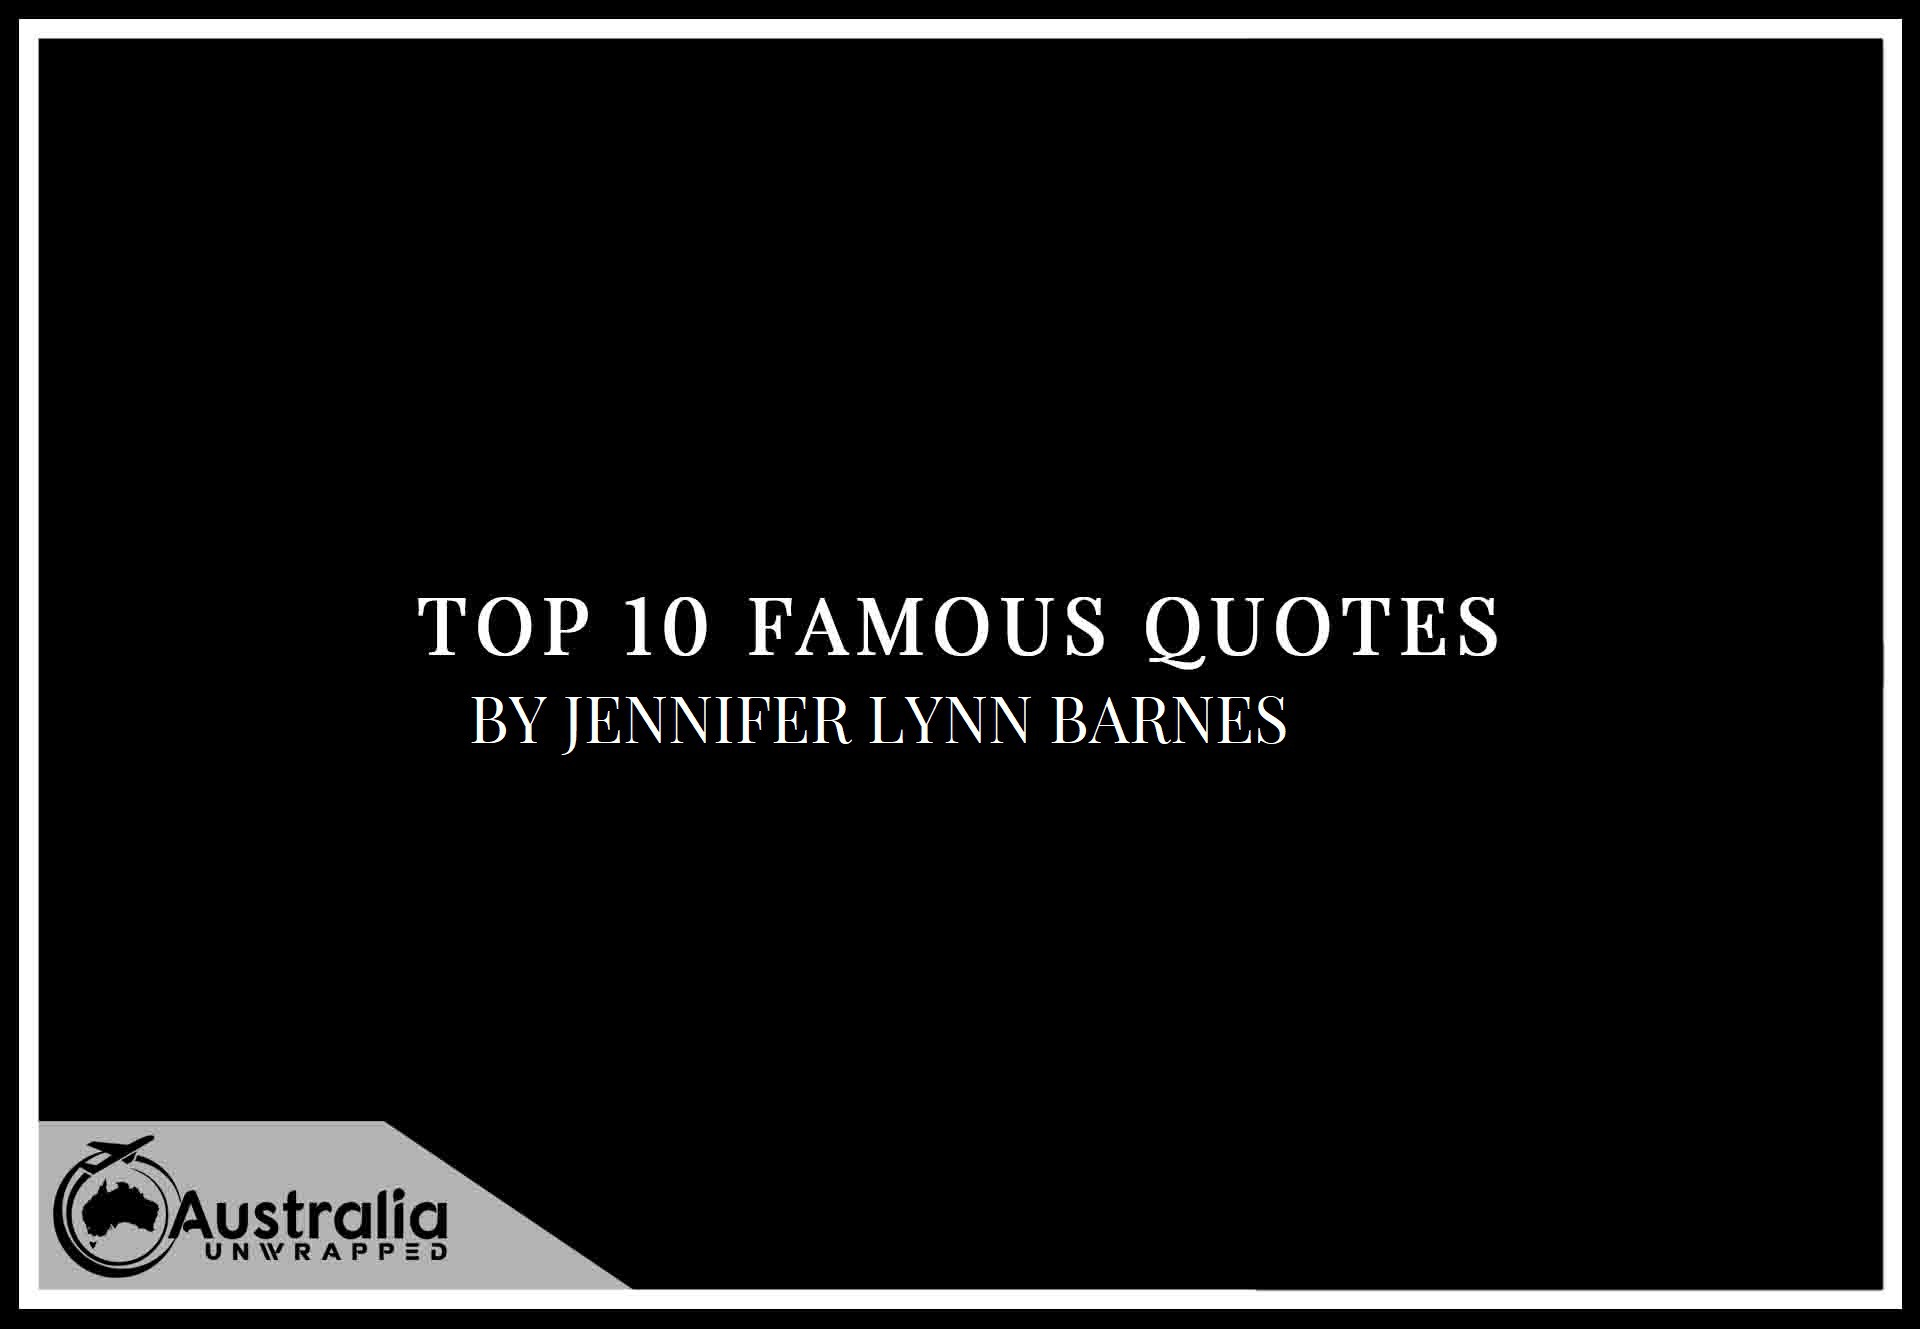 Top 10 Famous Quotes by Author Jennifer Lynn Barnes